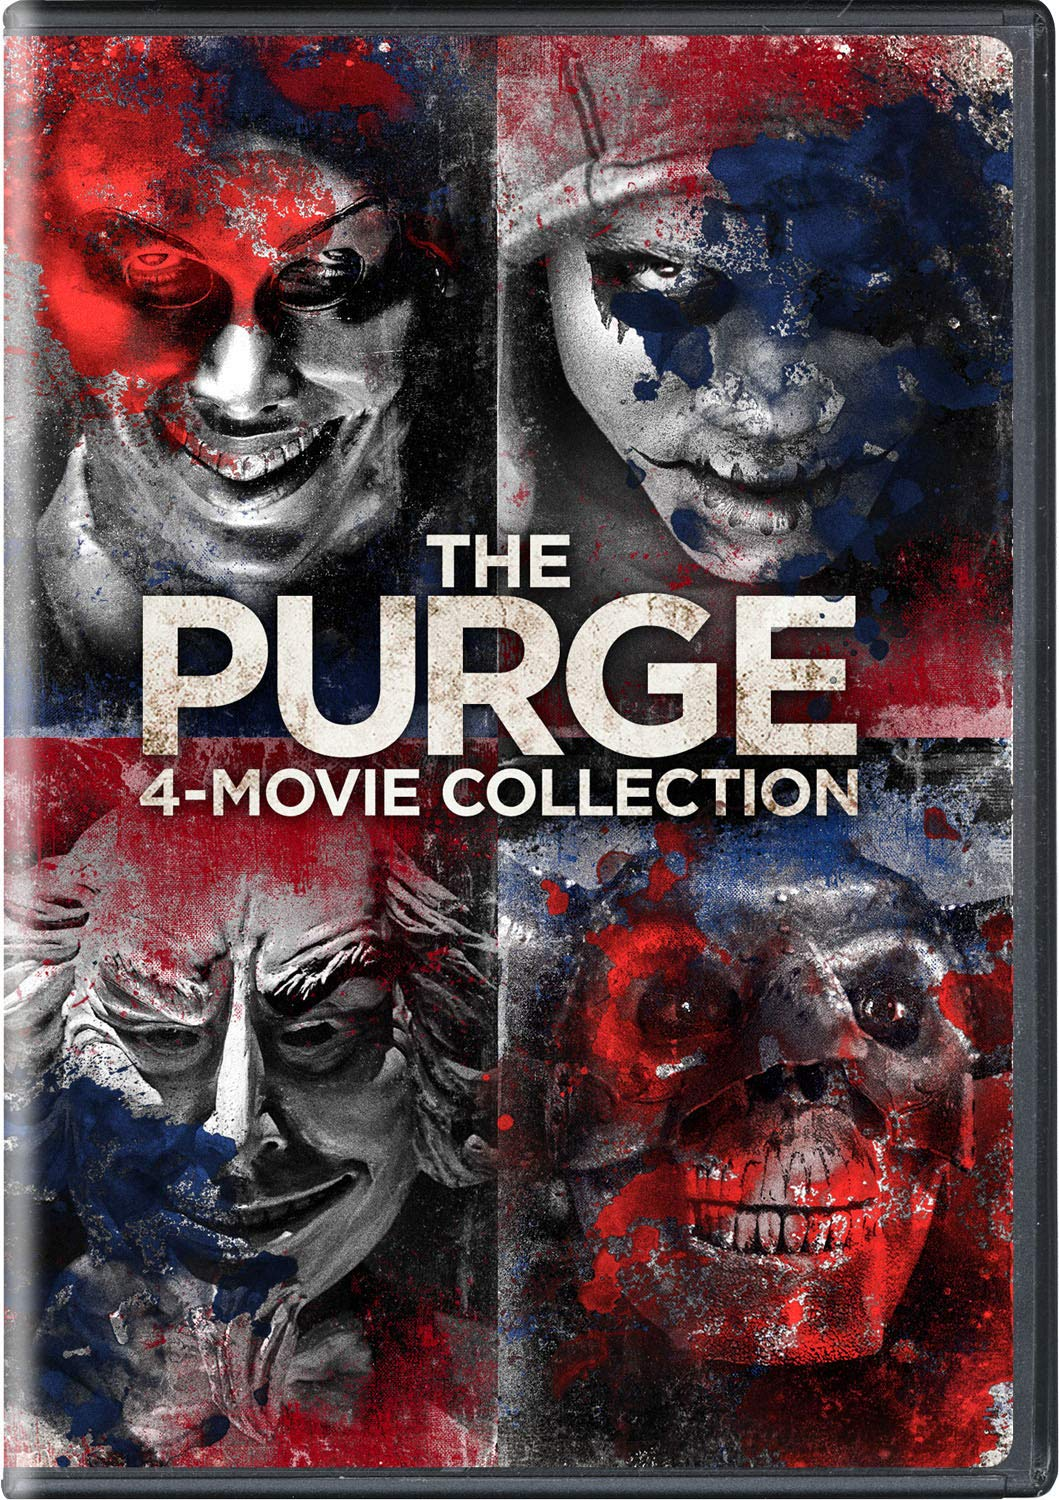 Amazon.com: The Purge: 4-Movie Collection: Ethan Hawke, Frank ...